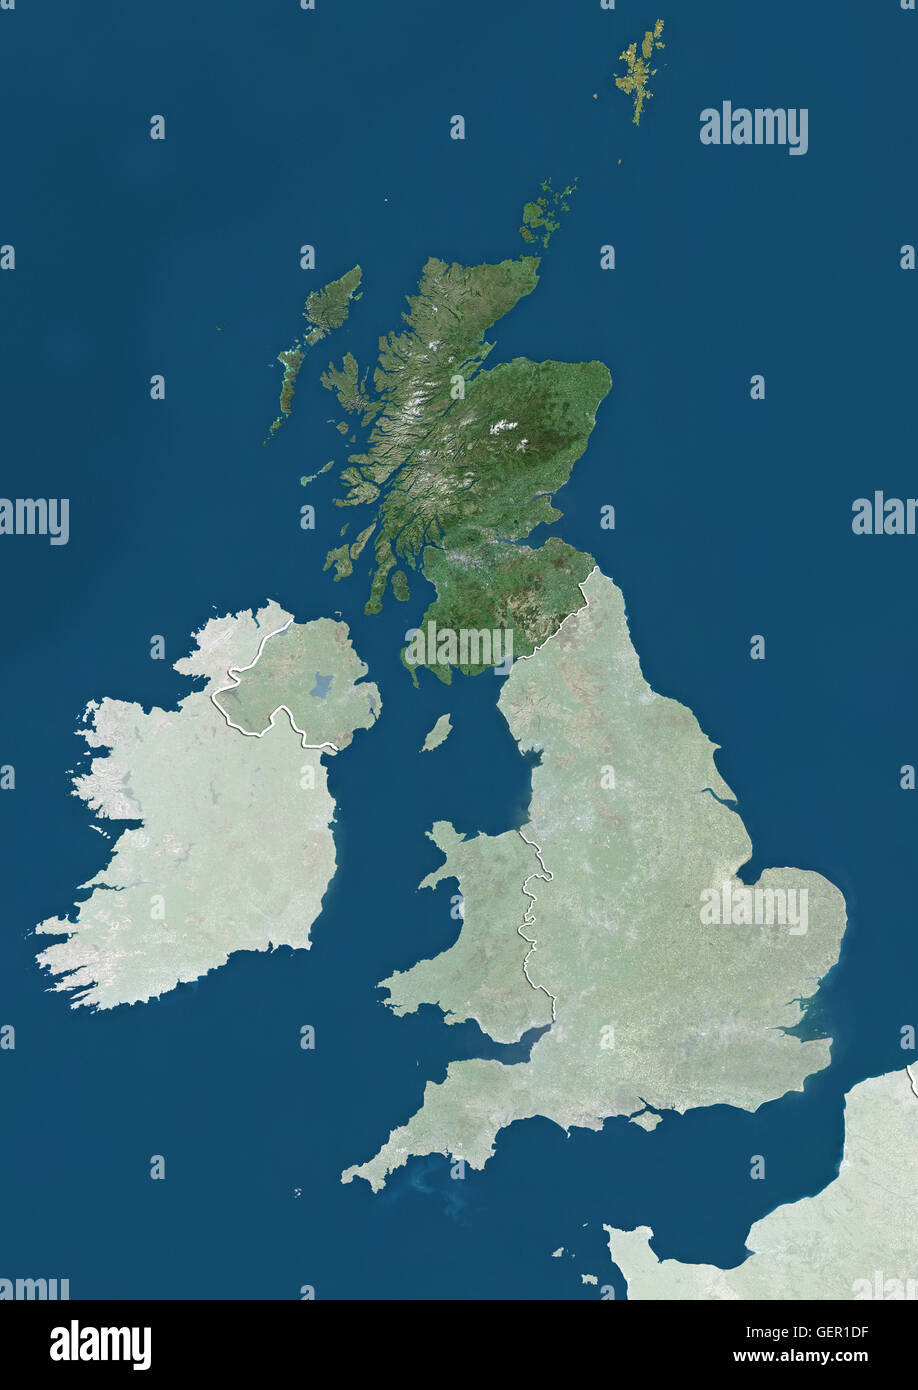 Satellite view of Scotland, UK (with country boundaries and